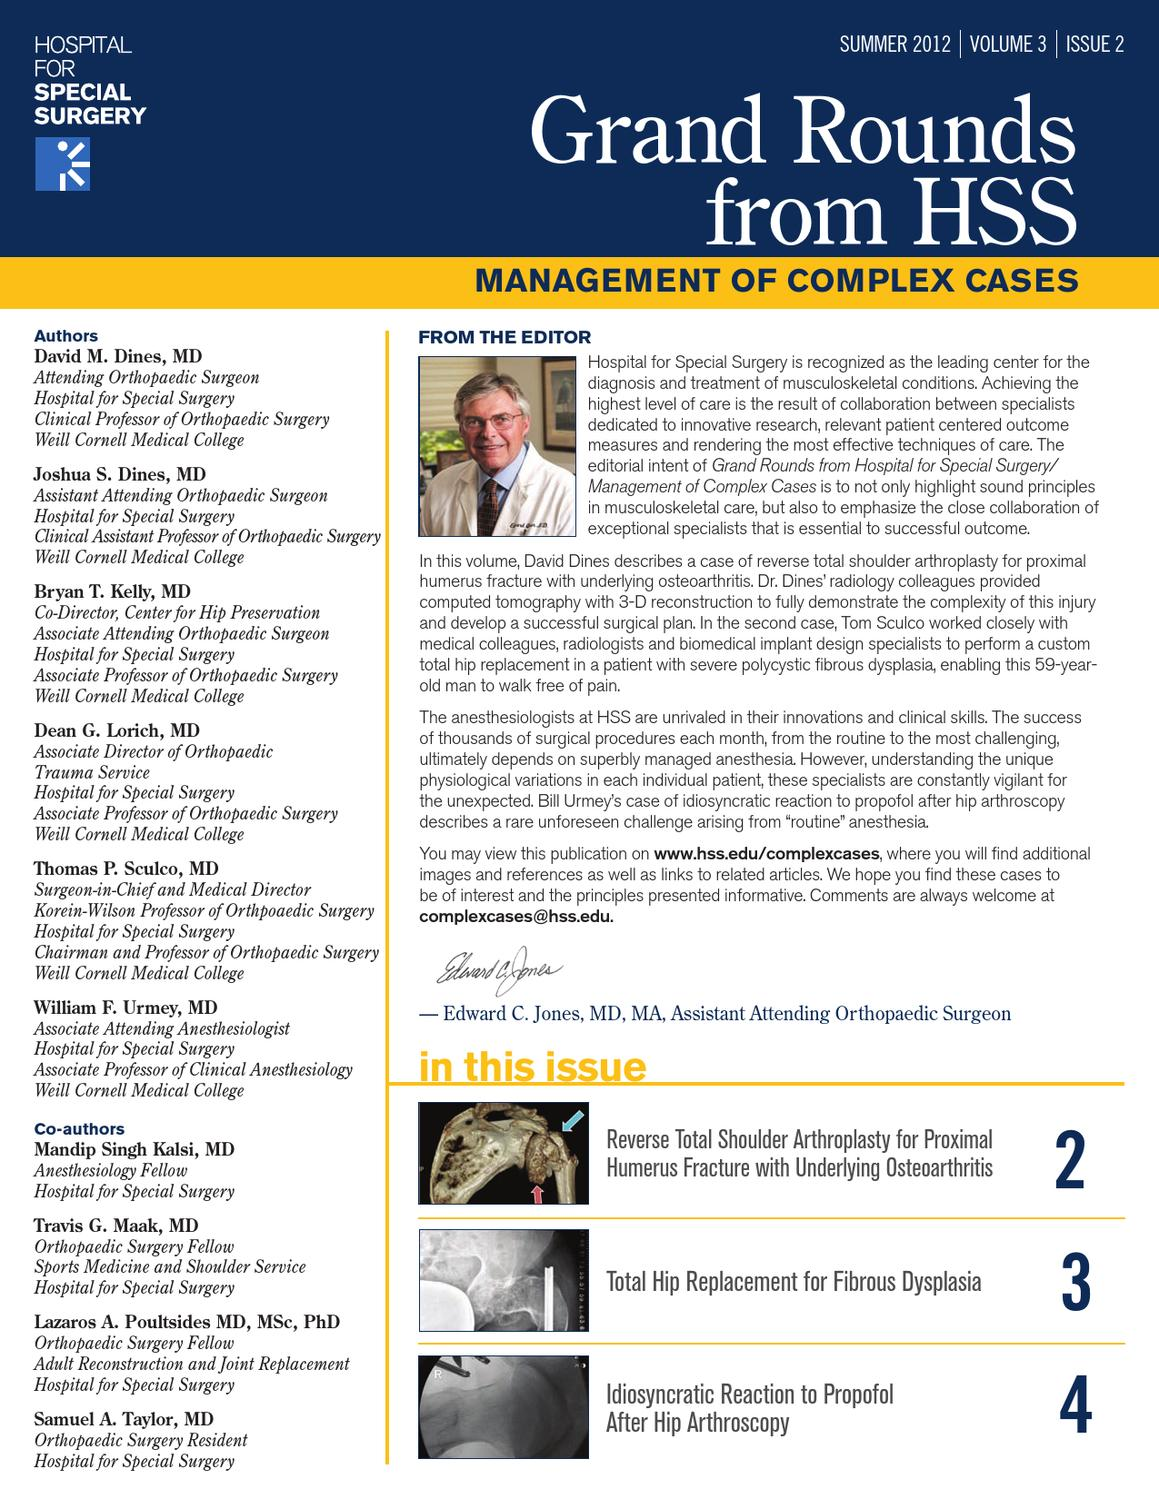 Grand Rounds from HSS - Summer 2012 - Volume 3, Issue 2 by Hospital